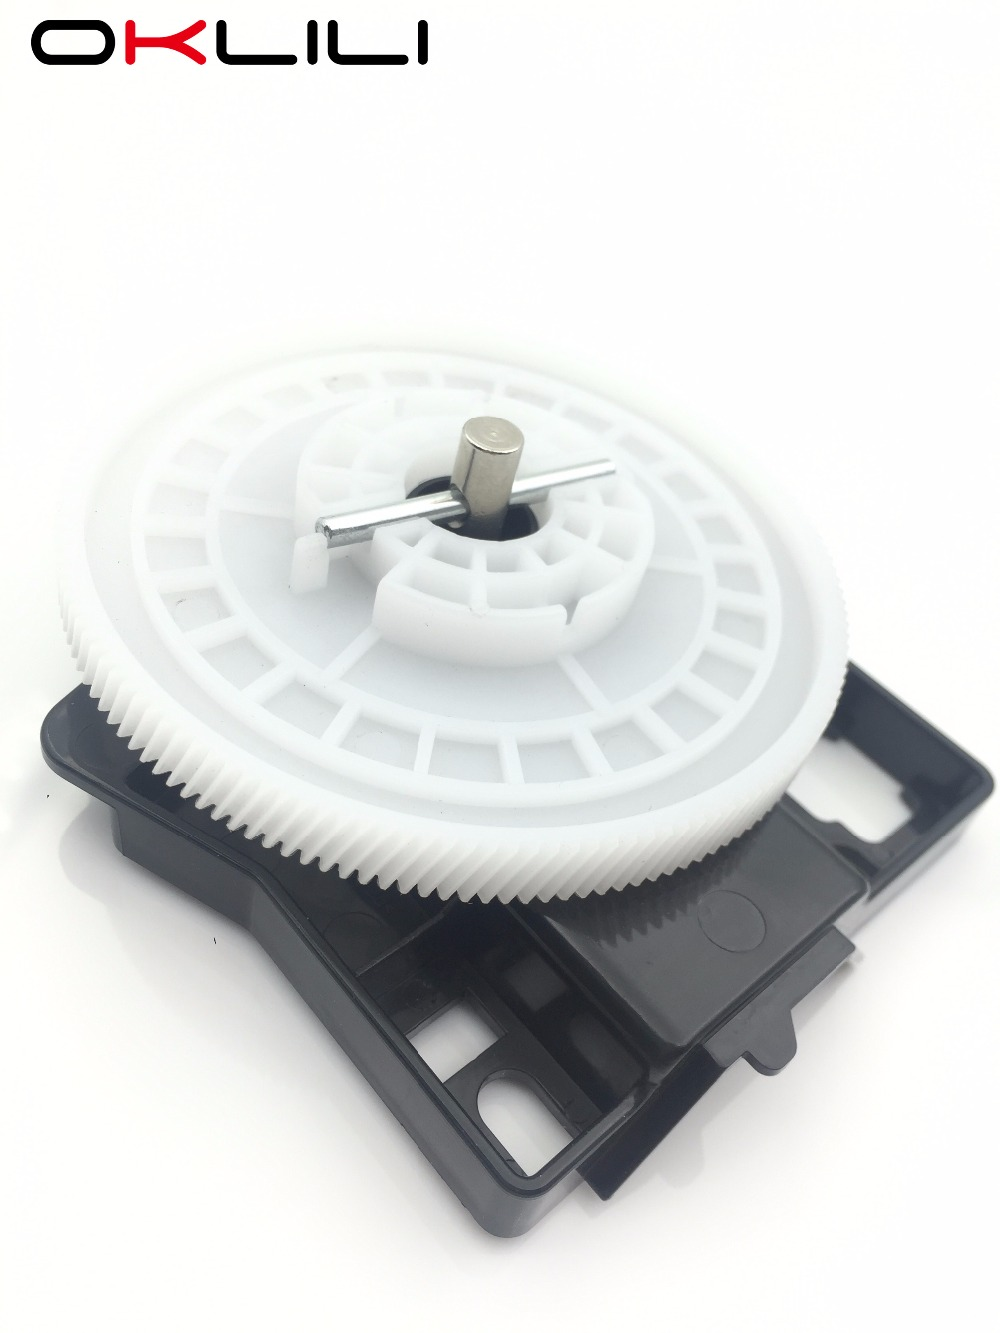 NEW RC3-2497 RC3-2497-000 Toner Drive Assy cover GEAR SUPPORT FRAME Cartridge Drive Gear assy for HP Pro 400 M401 M425 M475 M451 tango кпб bamboo 3d digital 1331 33